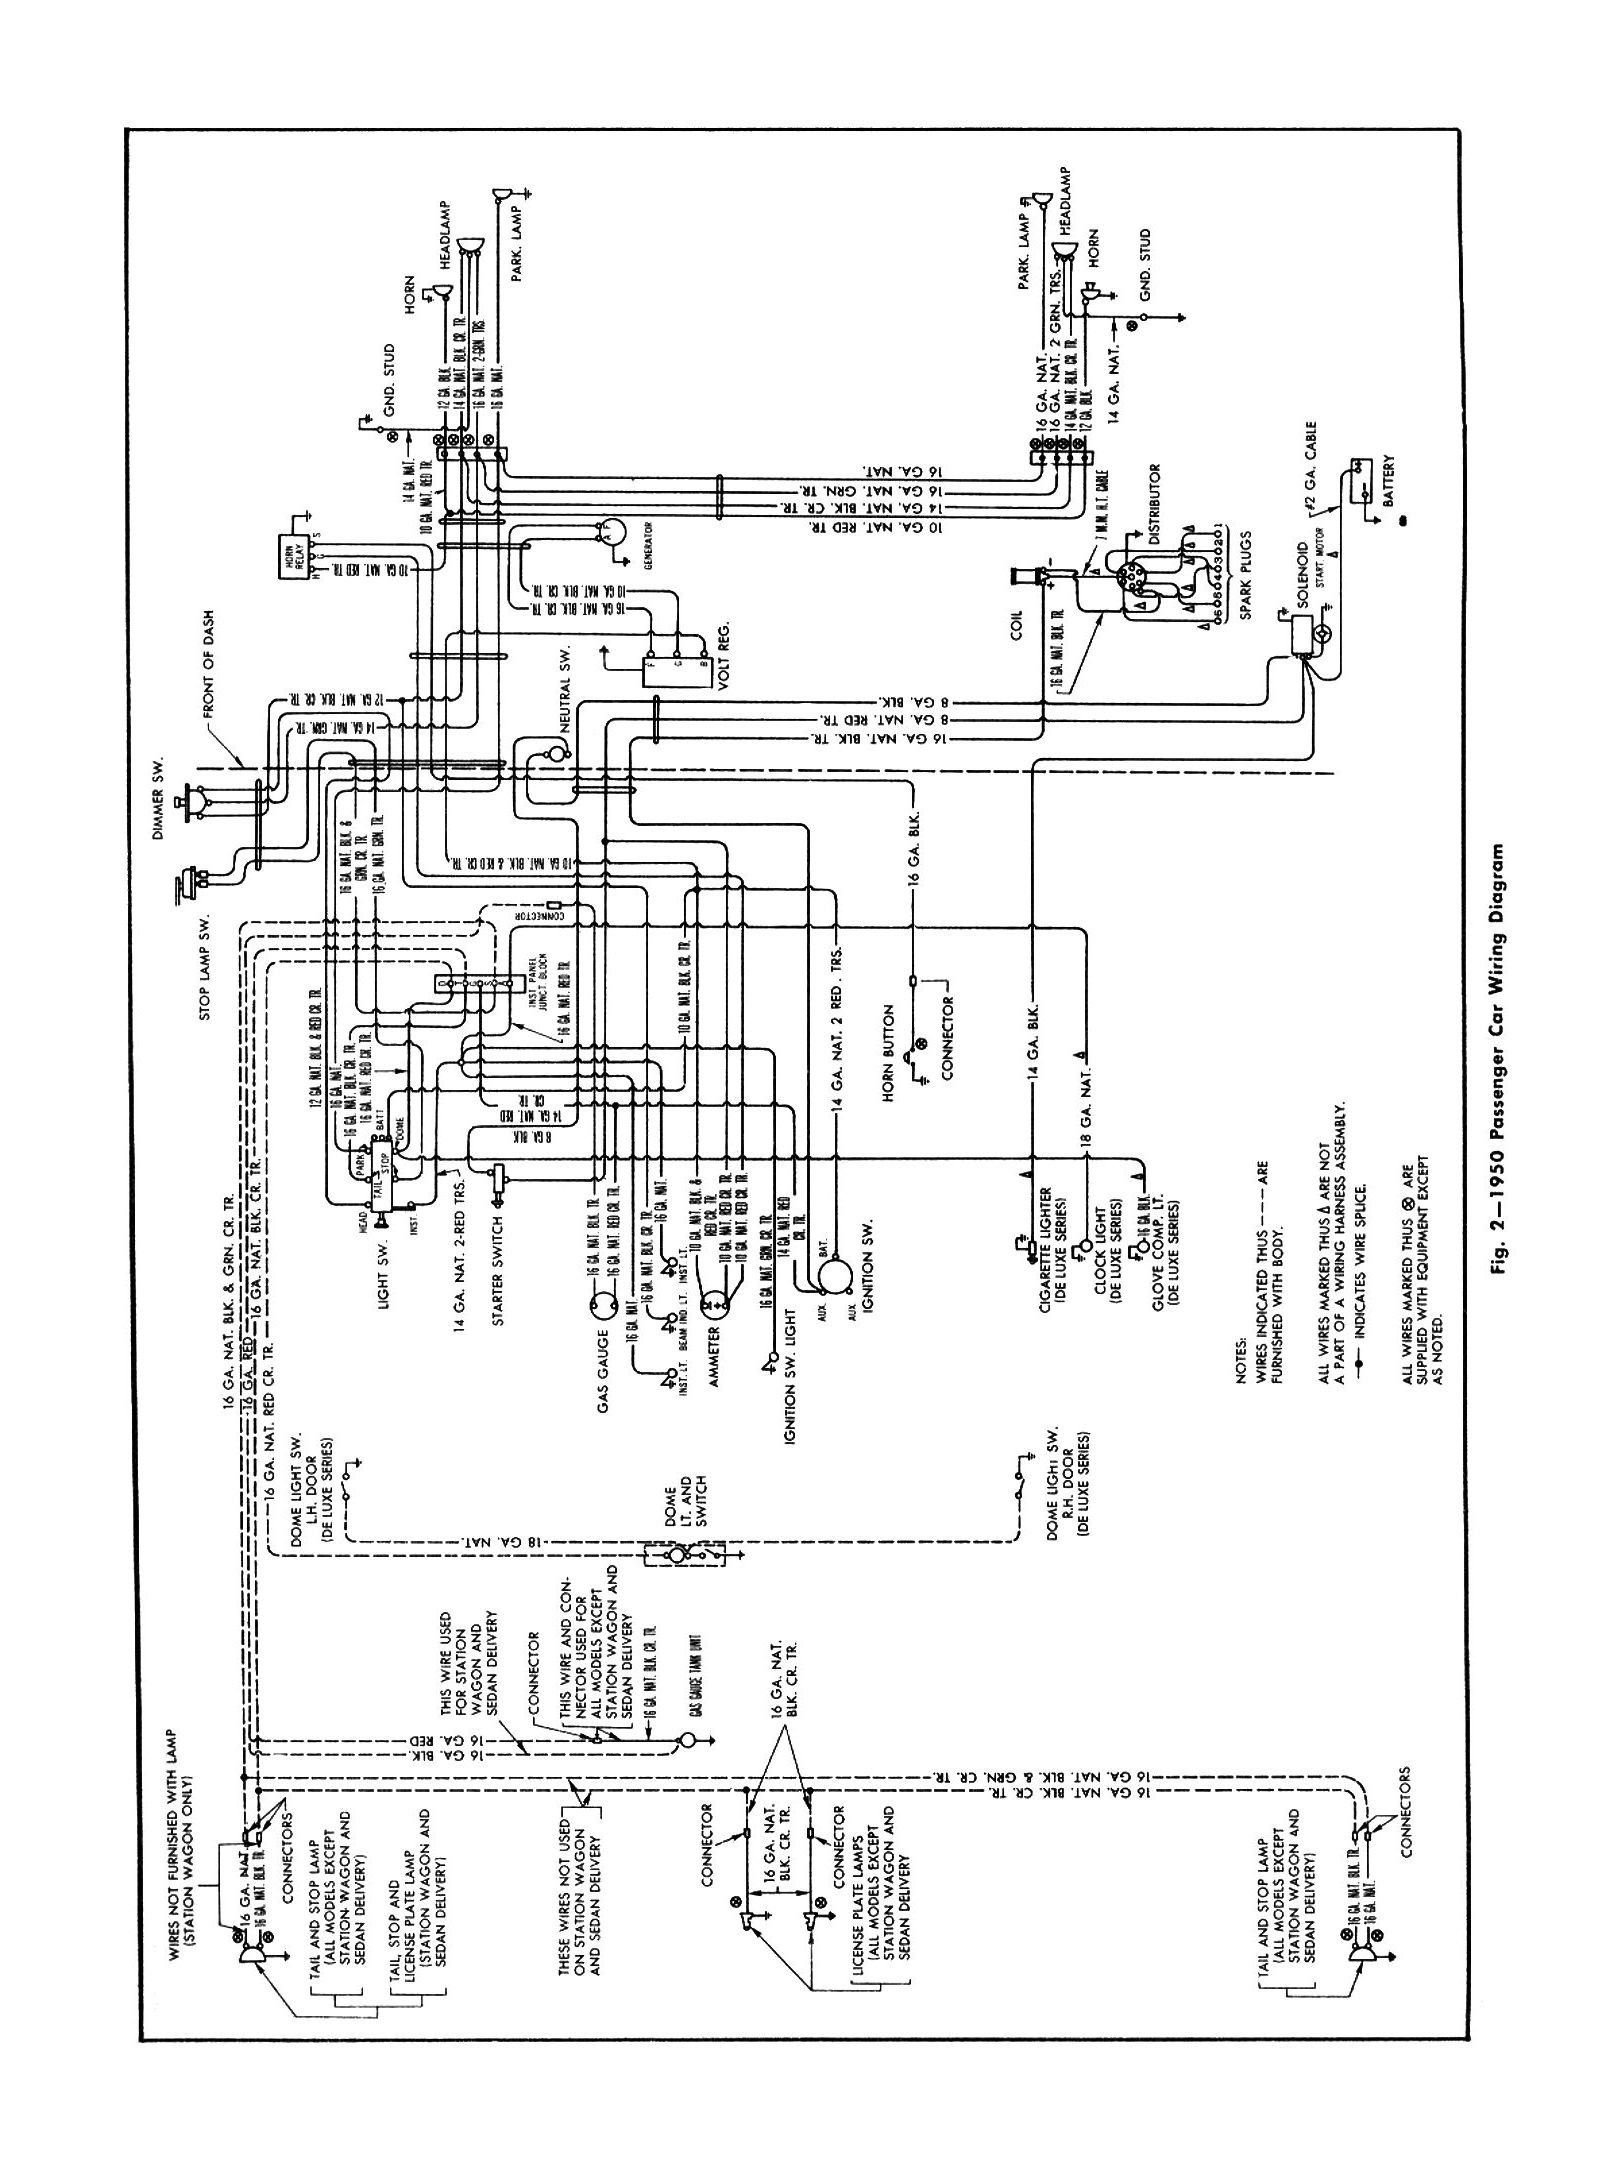 Wiring Diagram For Car Engine Diagram Diagramtemplate Diagramsample Jeep